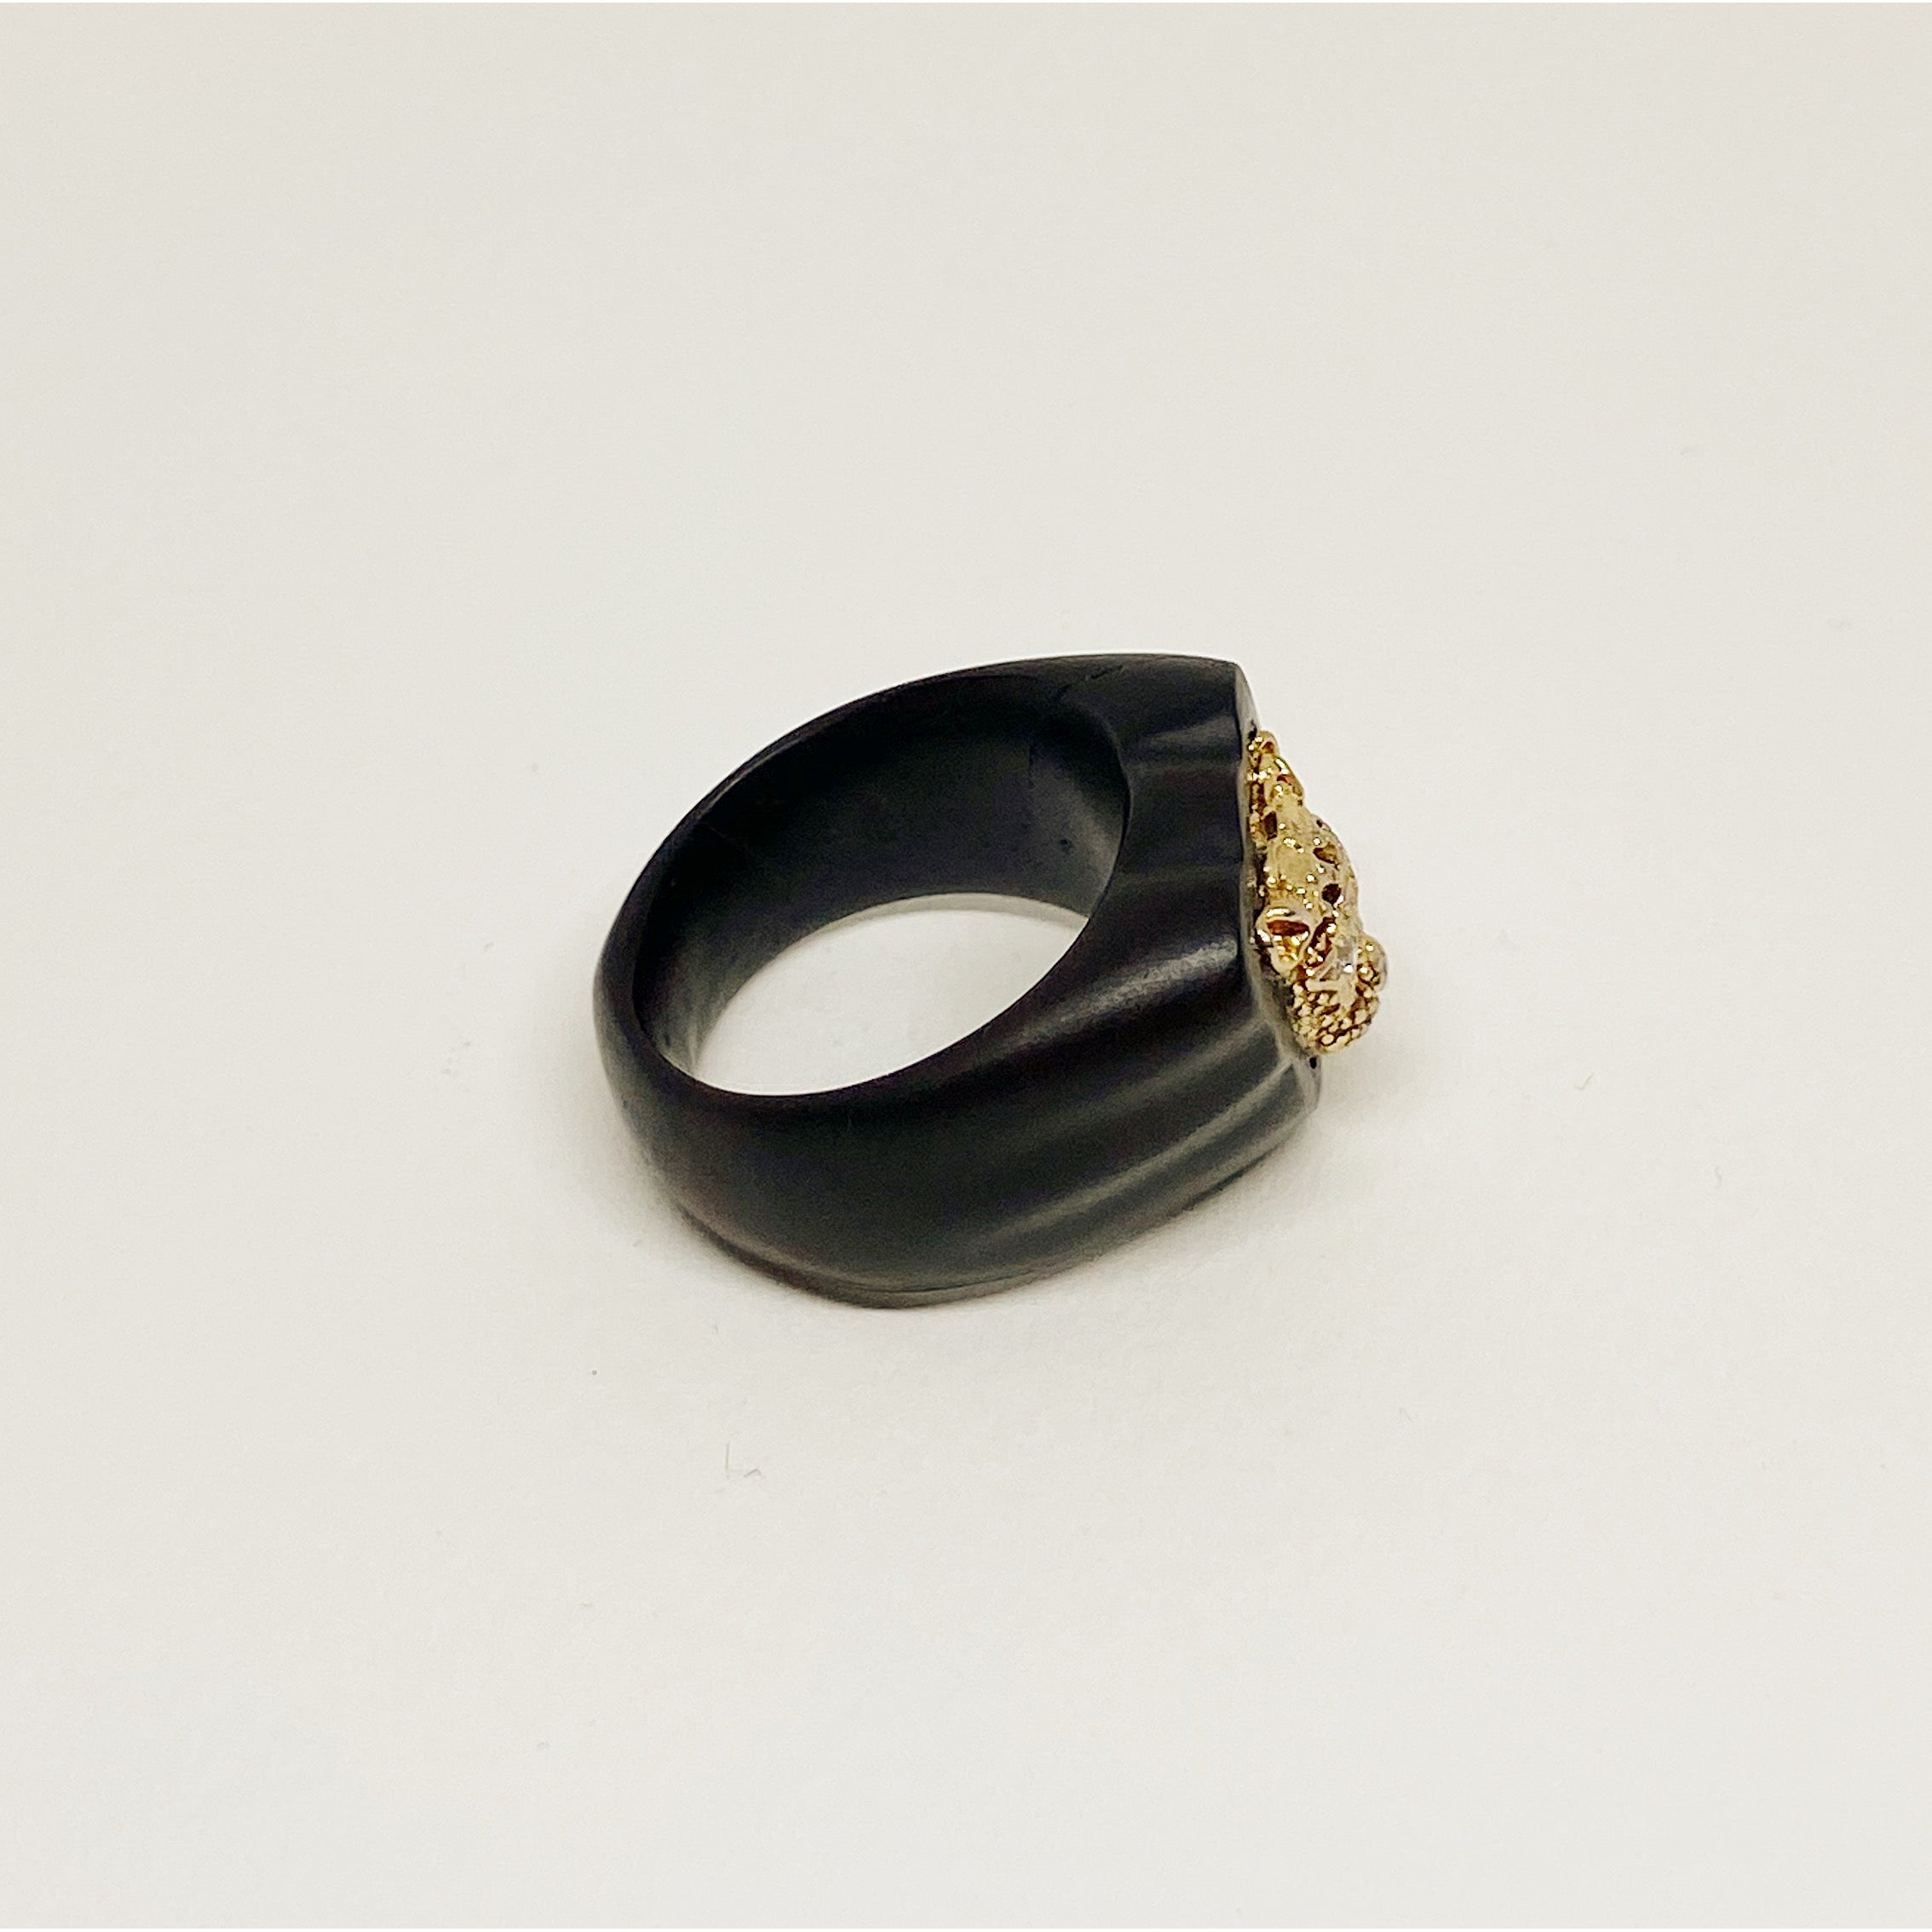 Golden Panther | Wooden Ring SOLD OUT